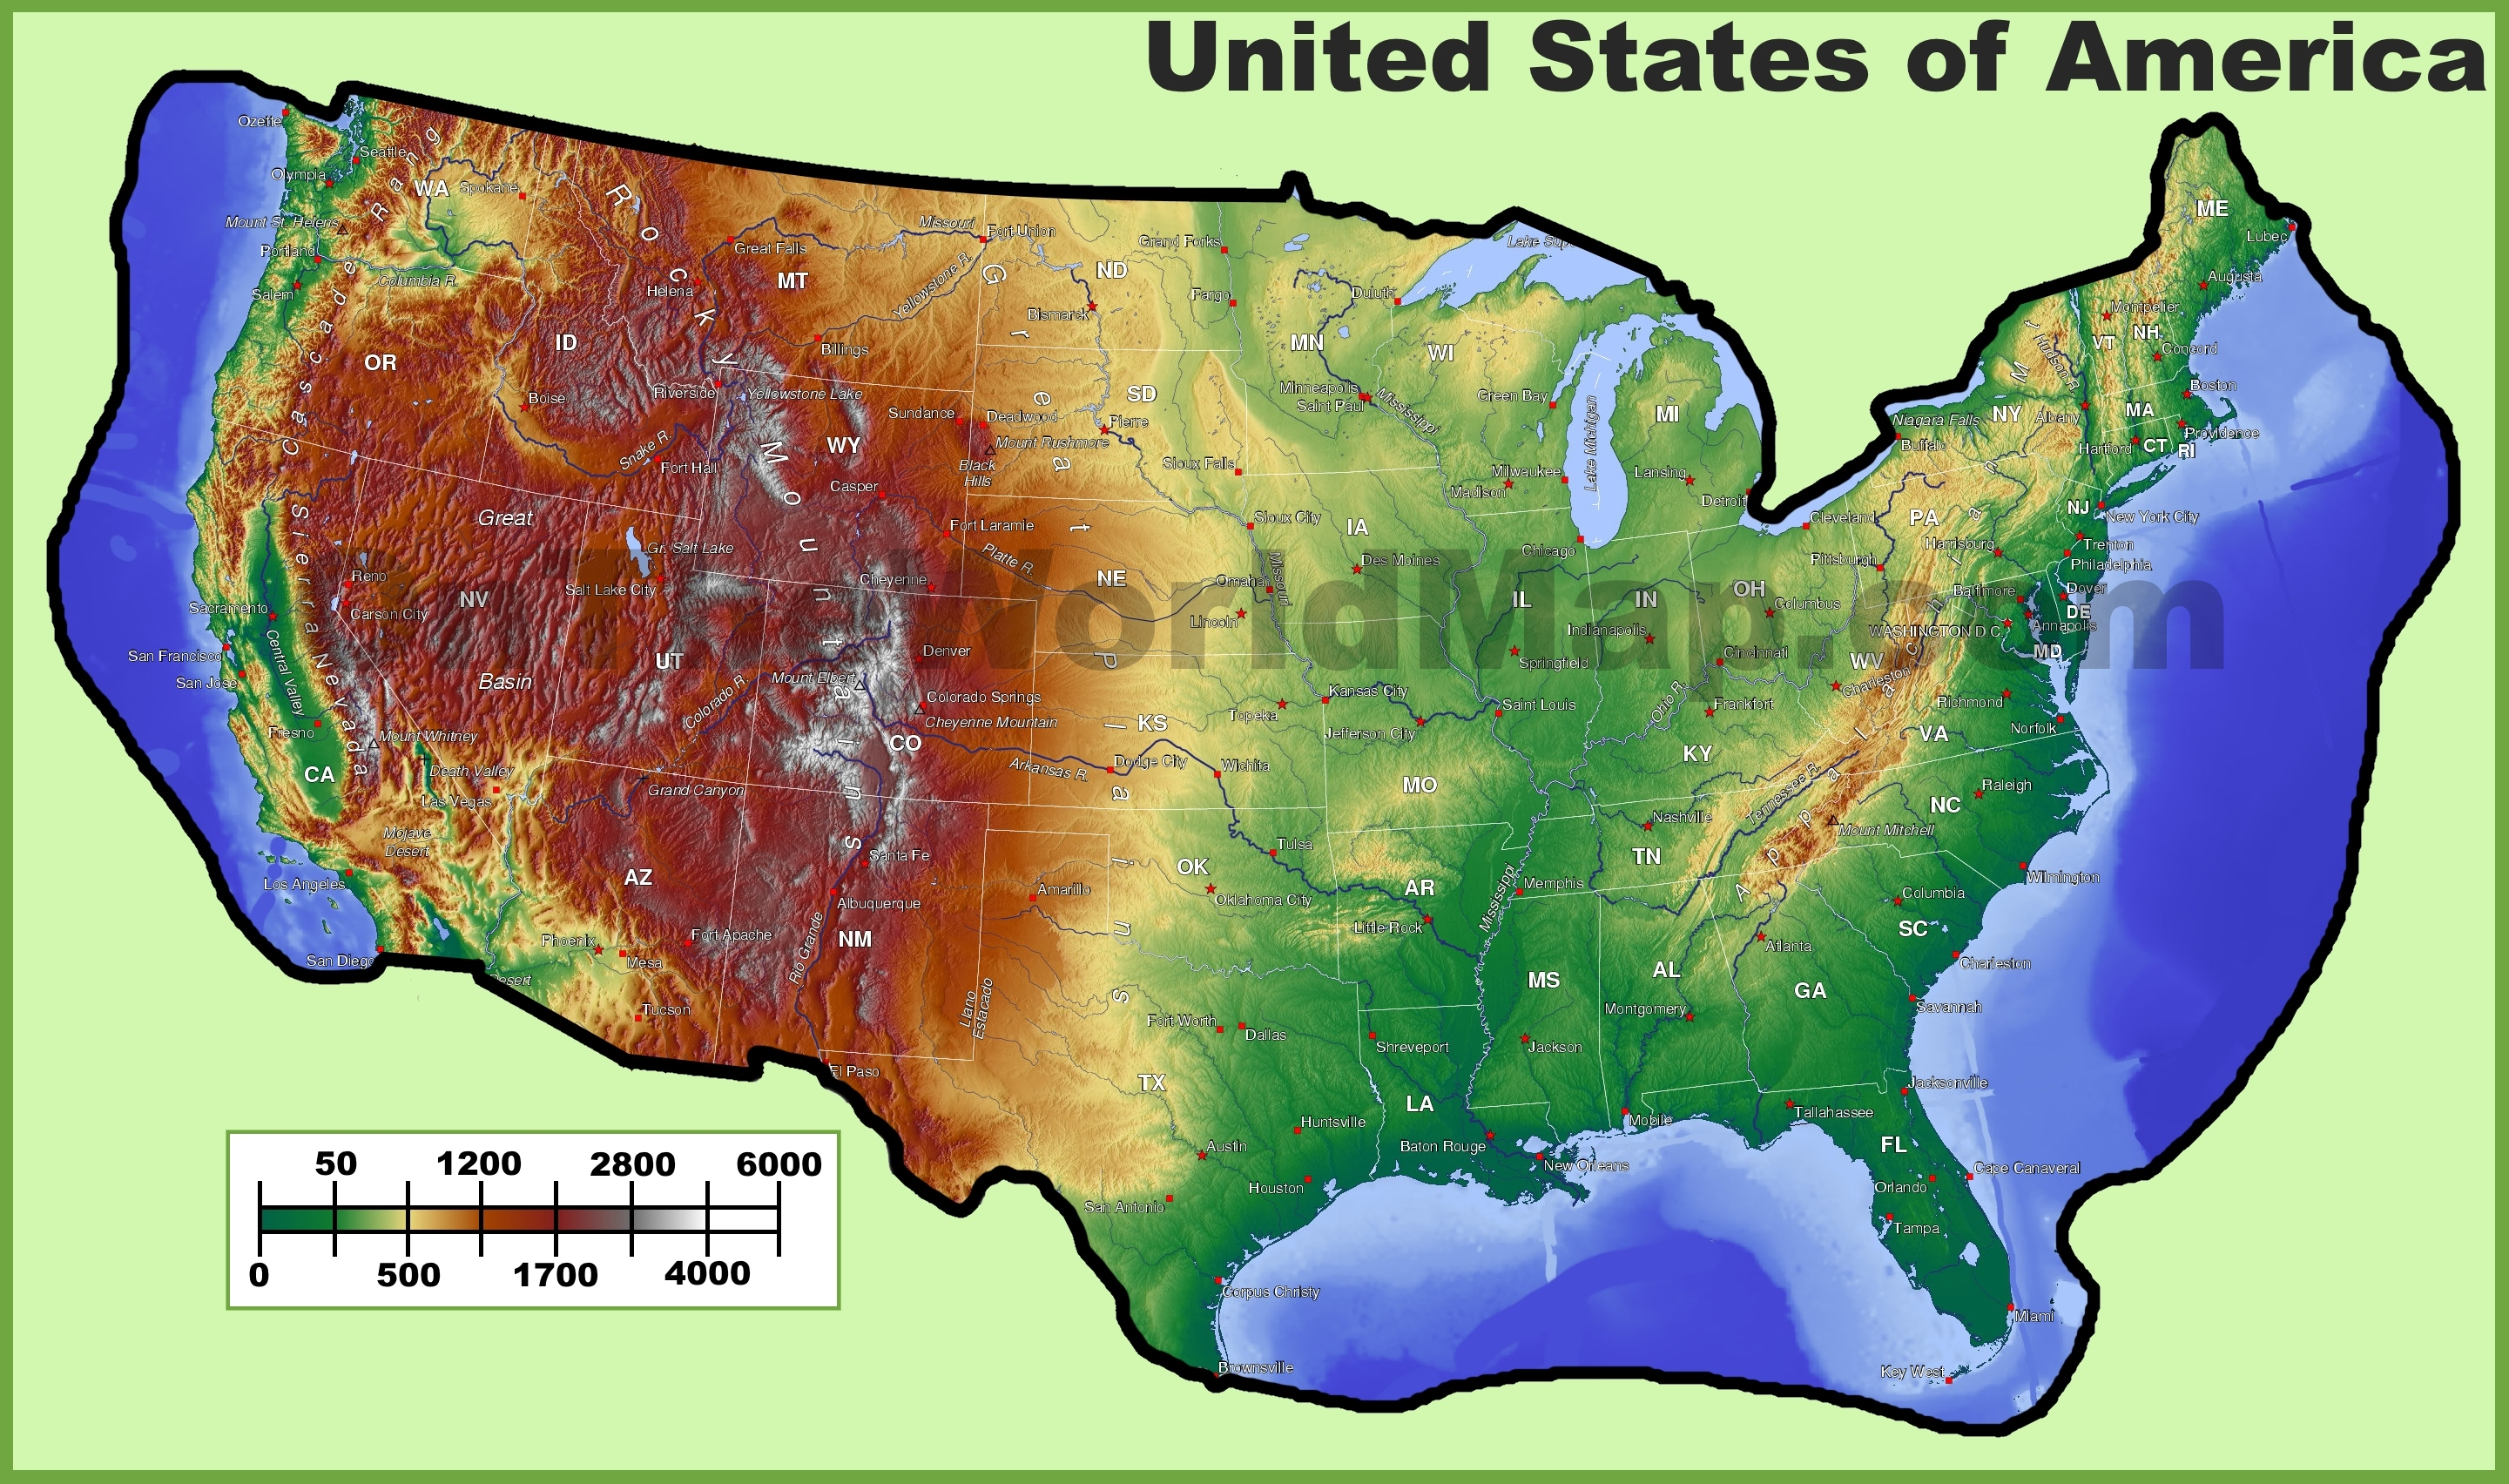 Topographic Map Of USA Geography Of The United States Wikipedia - Us forest service topographic maps